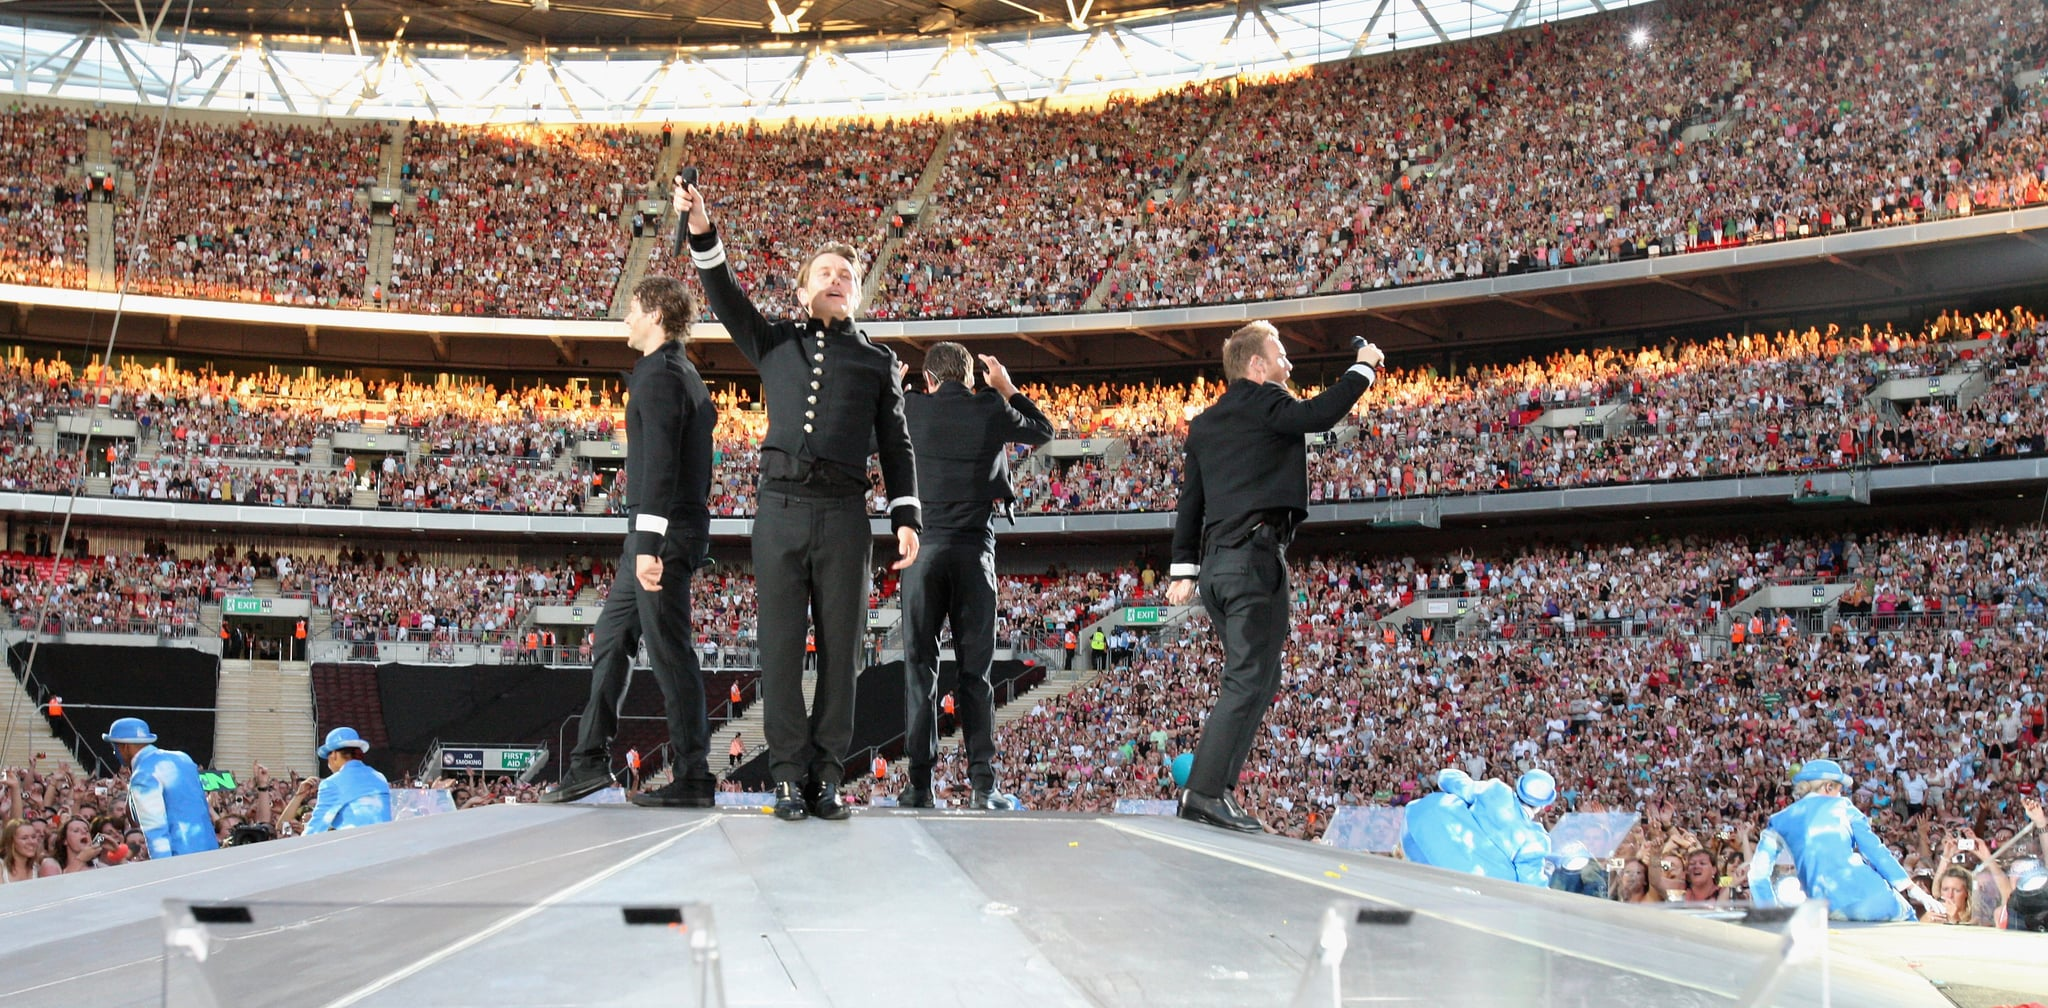 41 Best Take That - The Circus images | Take that, Mark ...